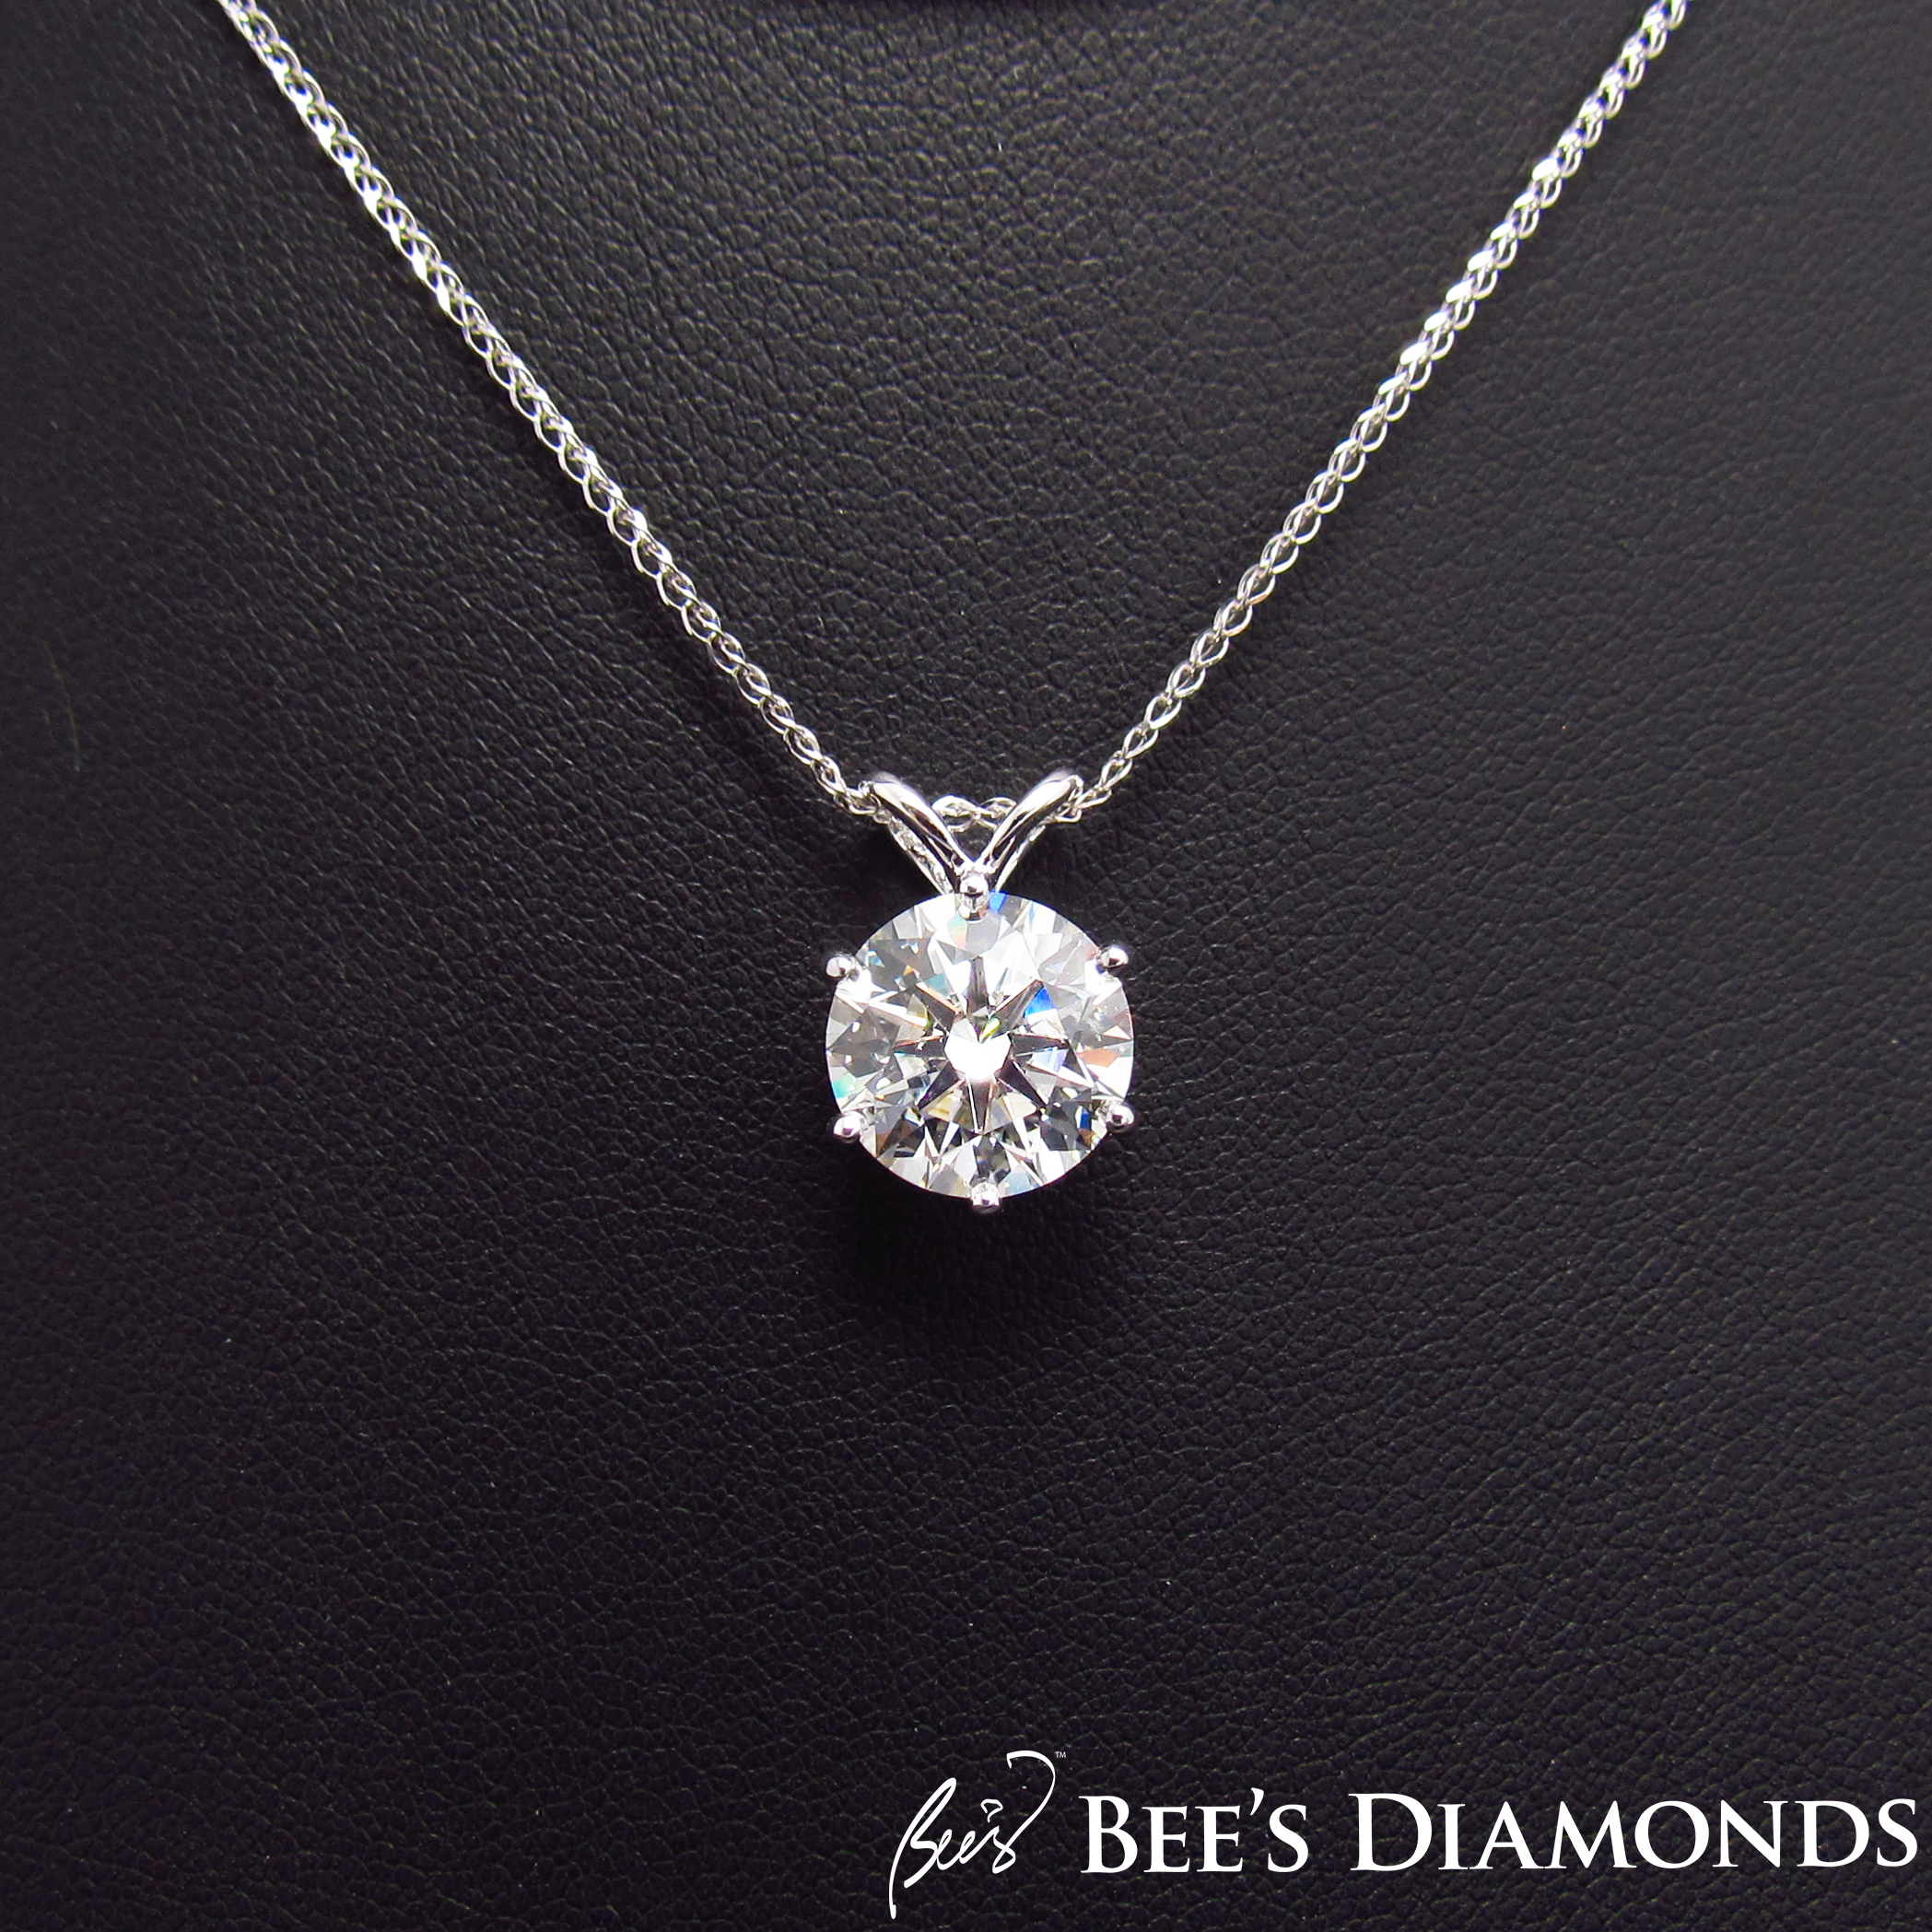 Large GIA, 4 carats diamond pendant, 18K White | Bee's Diamonds